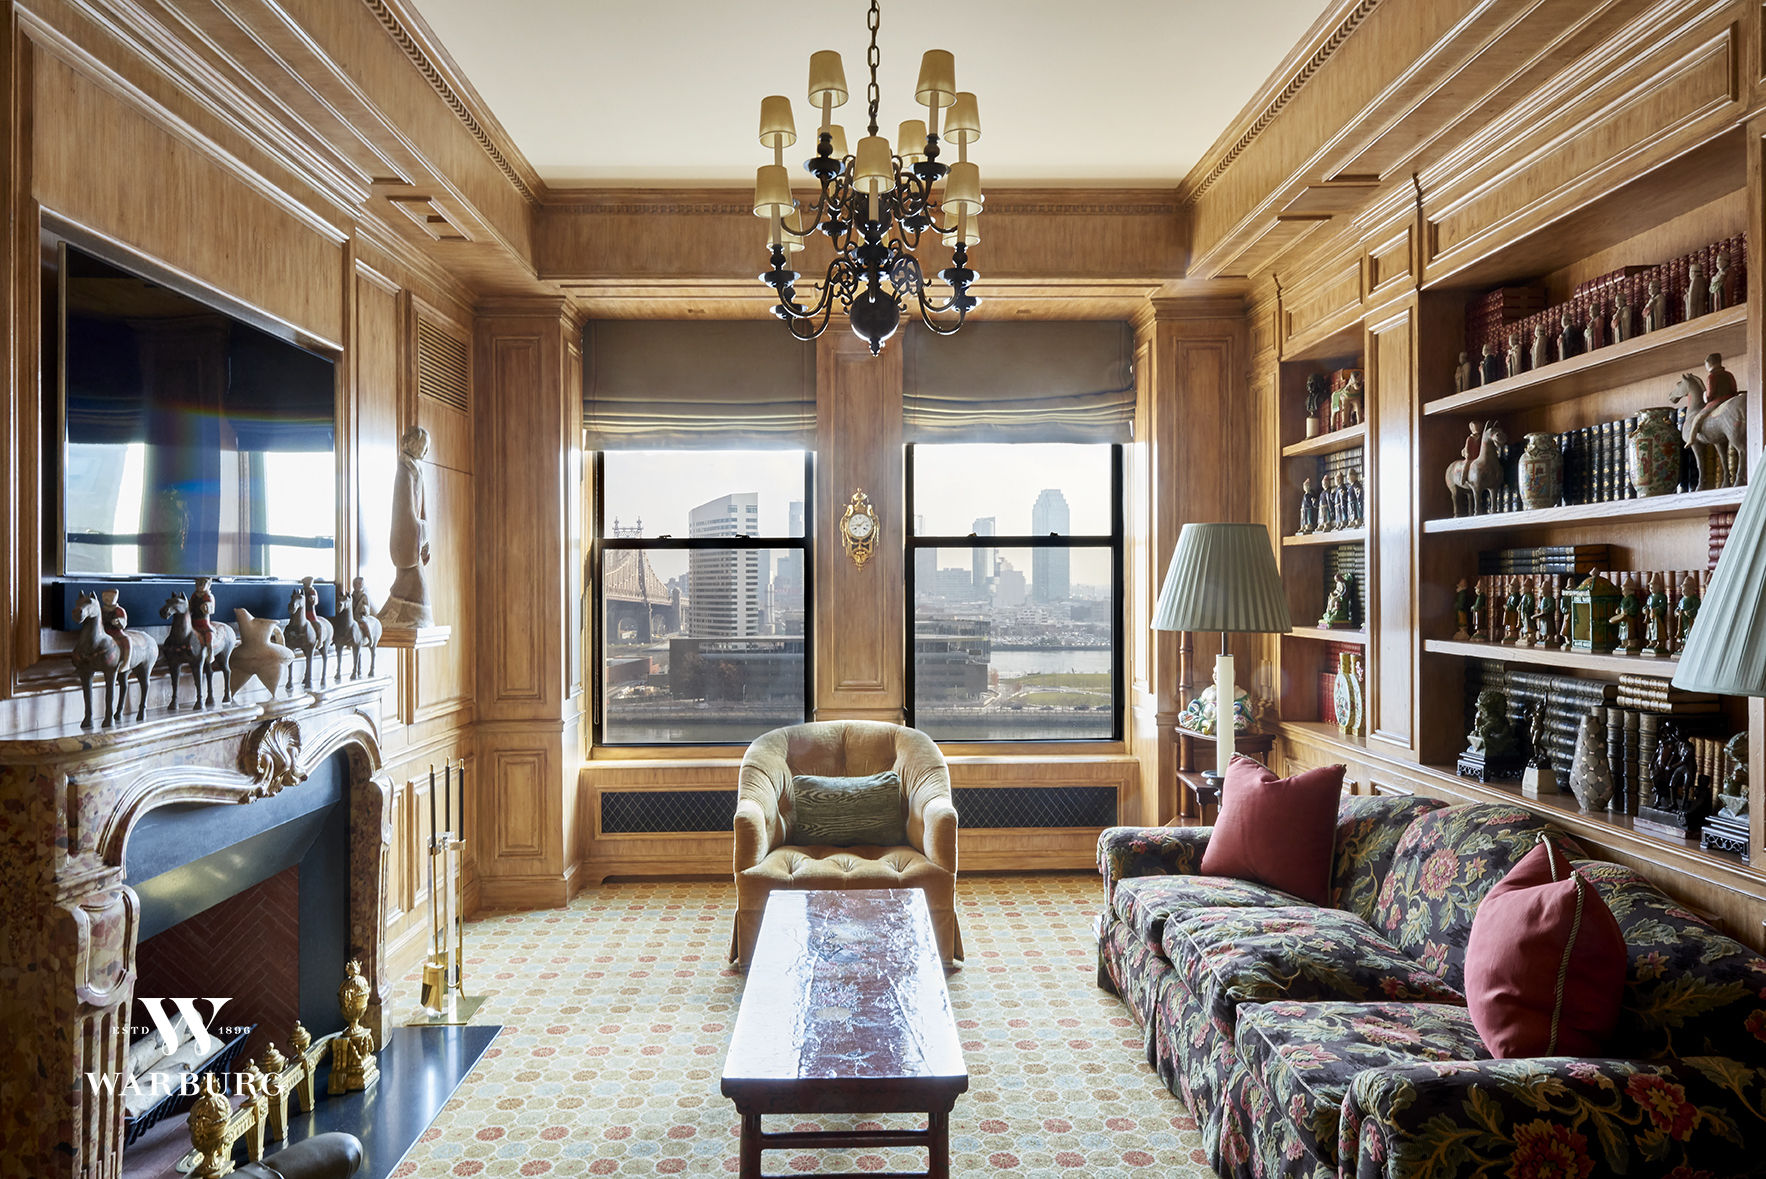 Take A Look At This Timeless Stephen Wang & Charles Krewson-Designed Co-Op In Rosario Candela and Cross & Cross' 4 Sutton Place